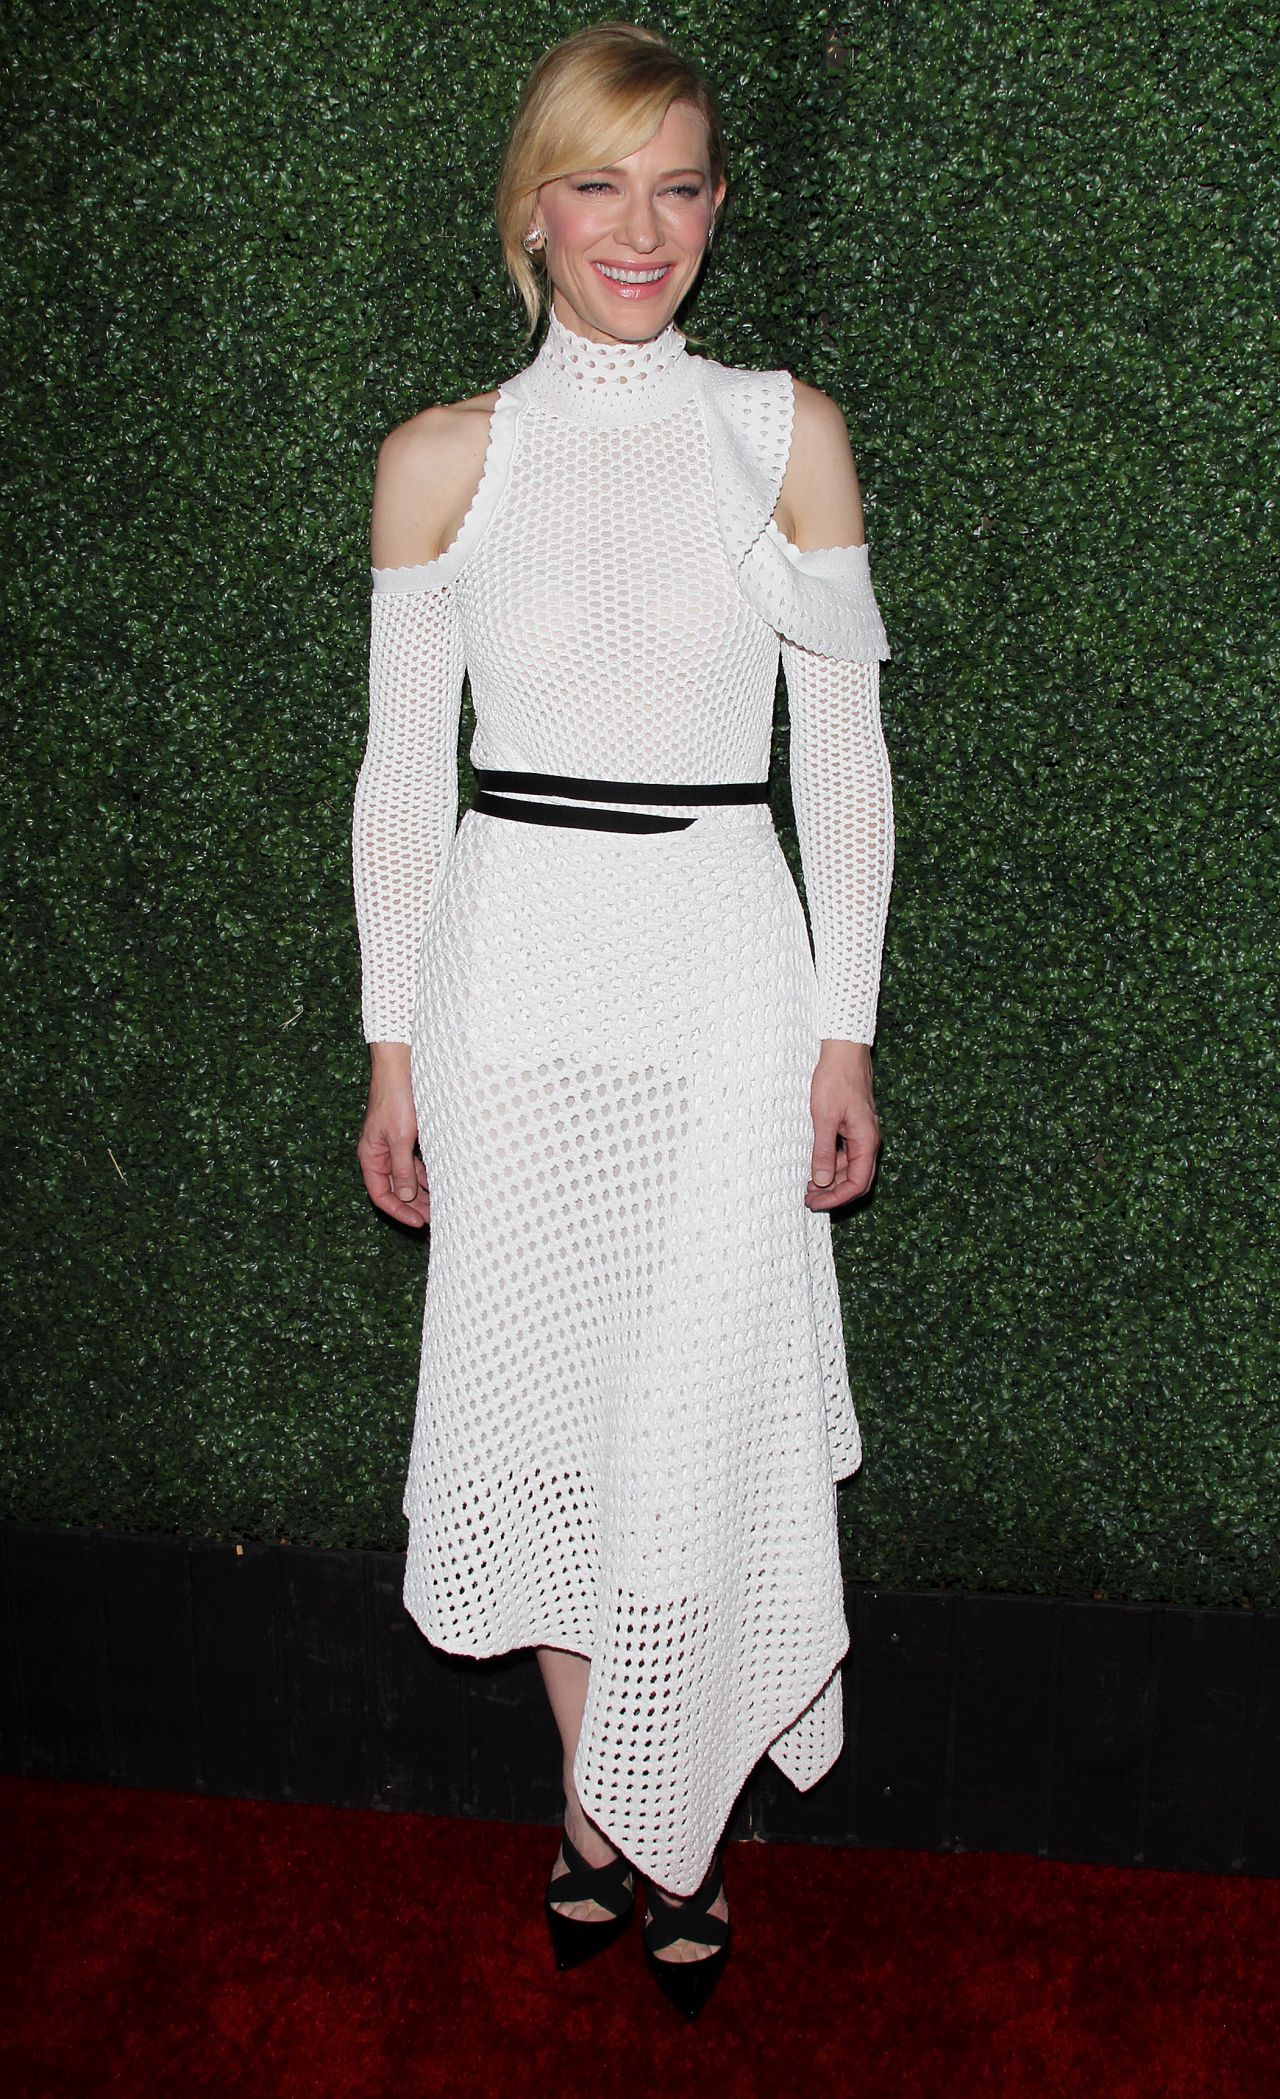 cate-blanchett-industry-screening-of-truth-in-los-angeles_1